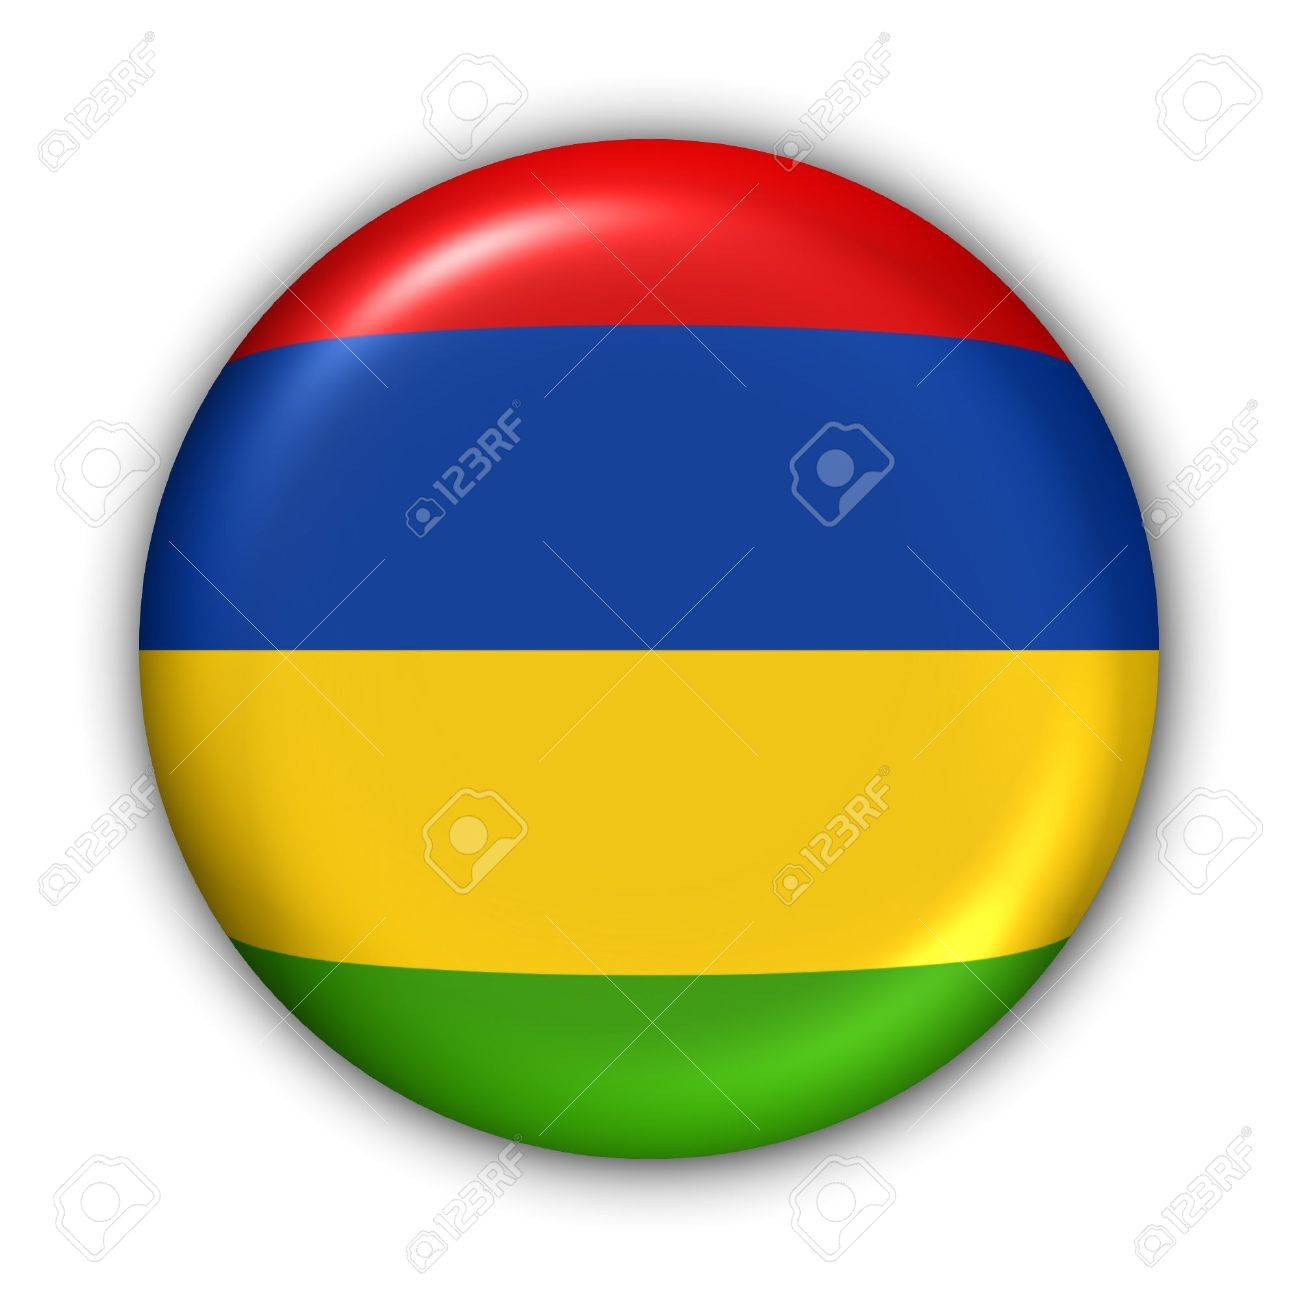 World Flag Button Series - Africa - Mauritius (With Clipping Path) - 373960